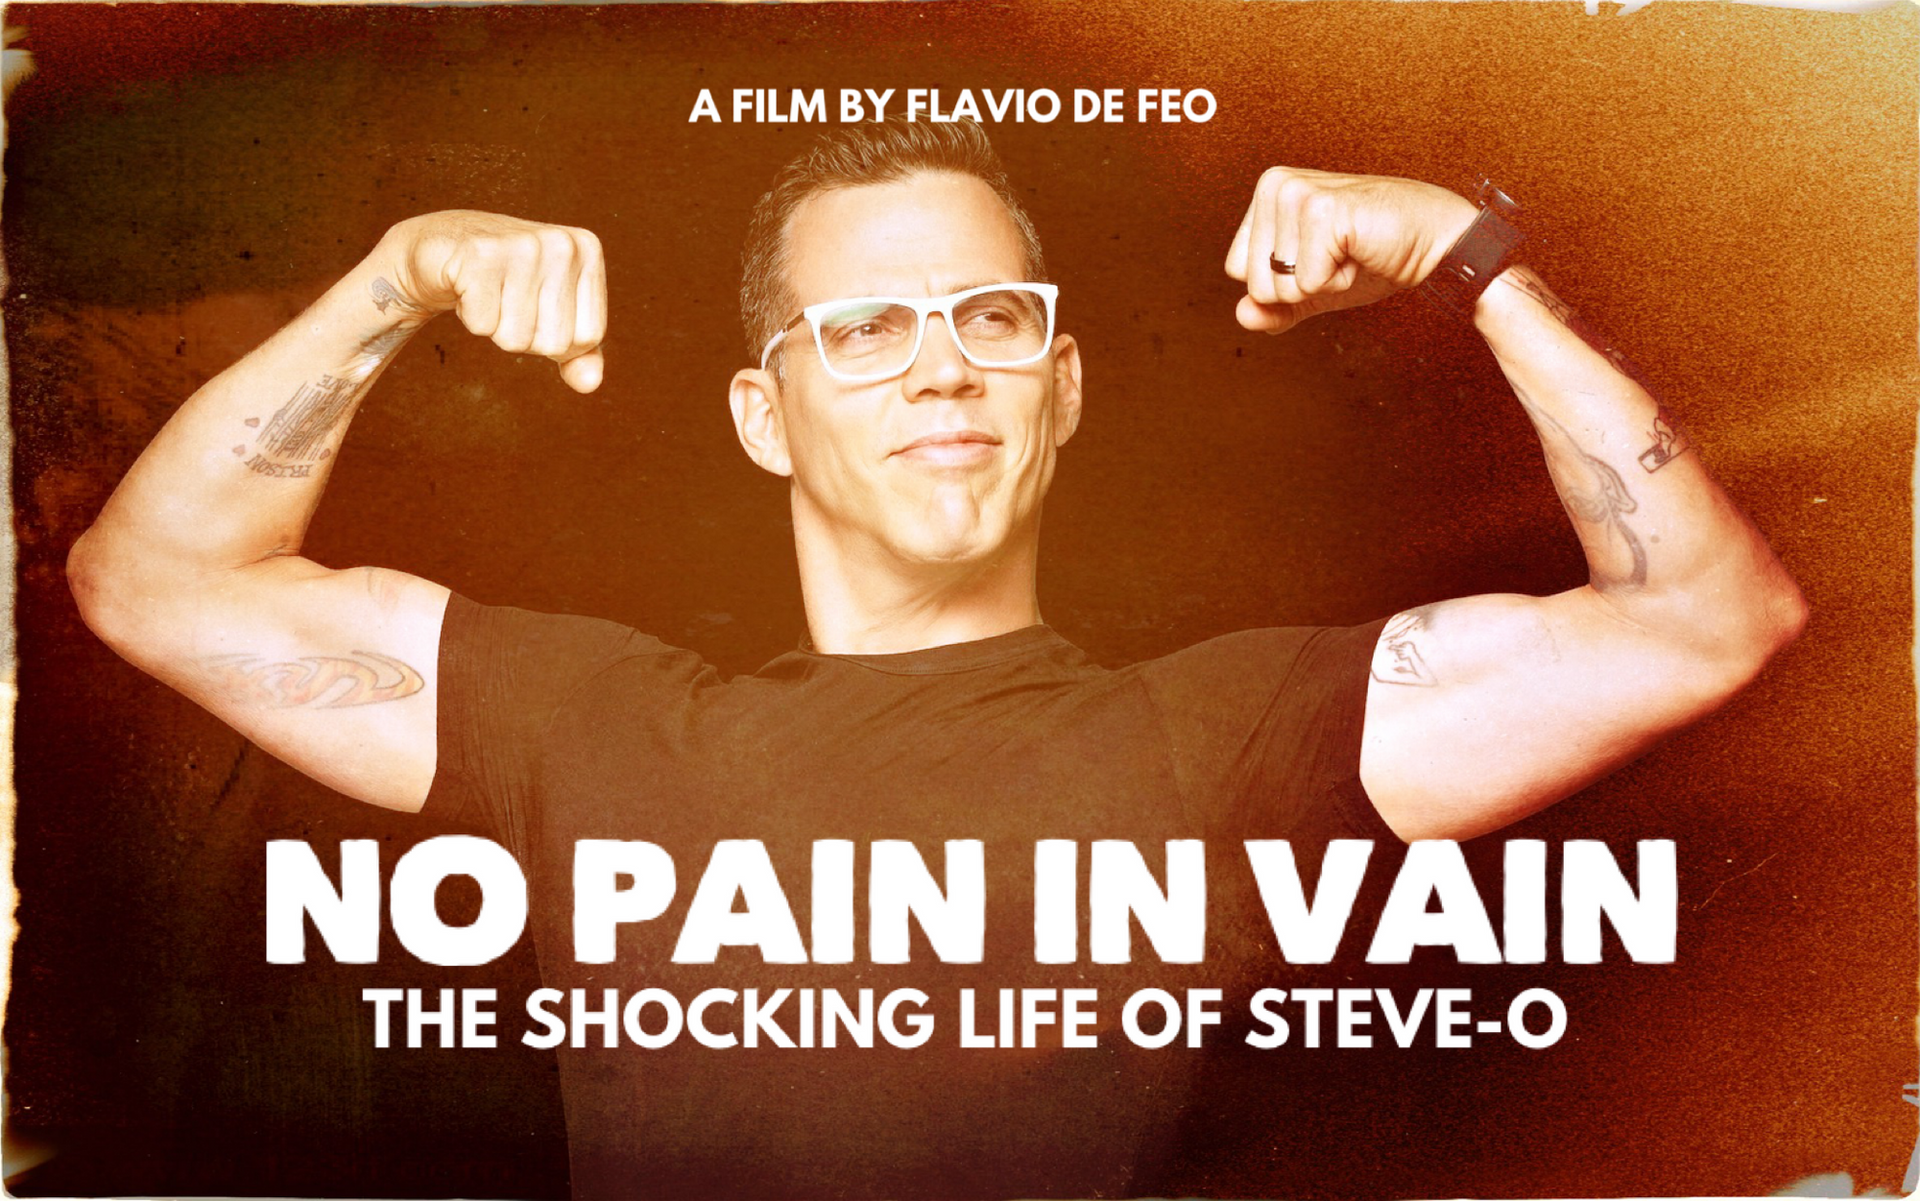 NO PAIN IN VAIN - The Shocking Life of Steve-O